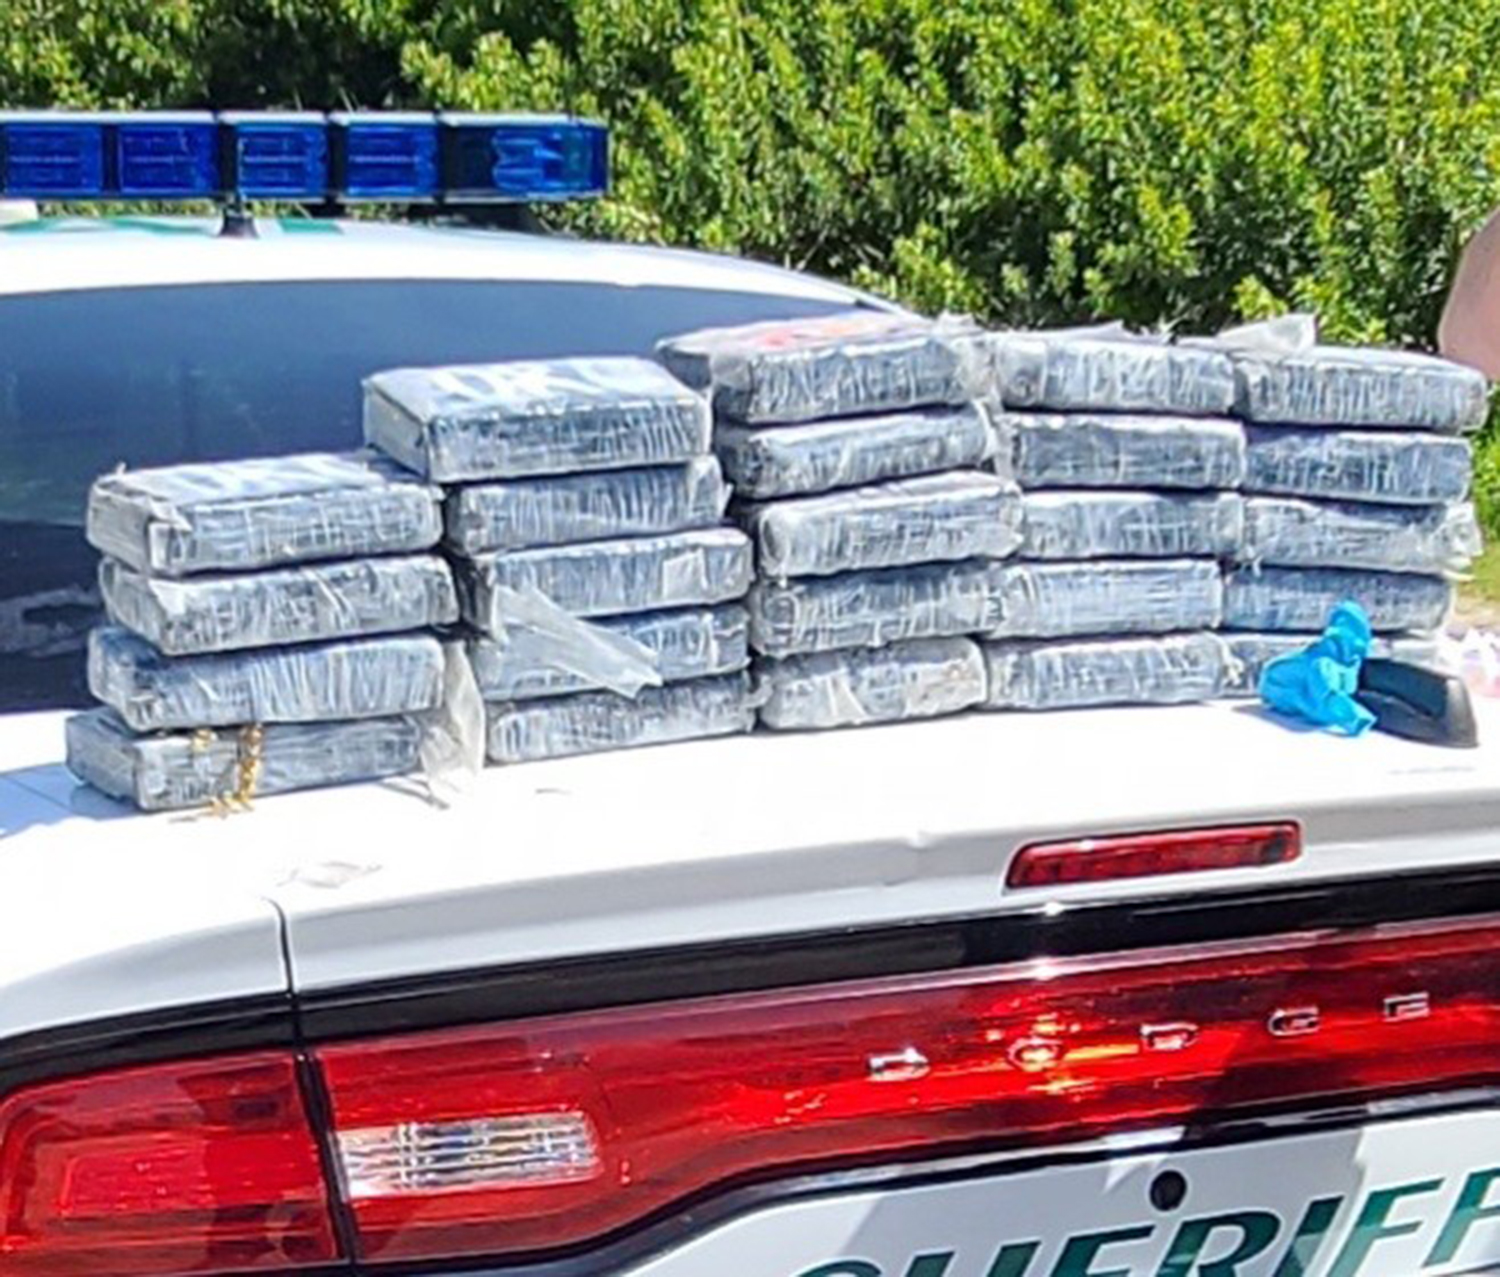 cocaine seized at Cape Canaveral Space Force Station